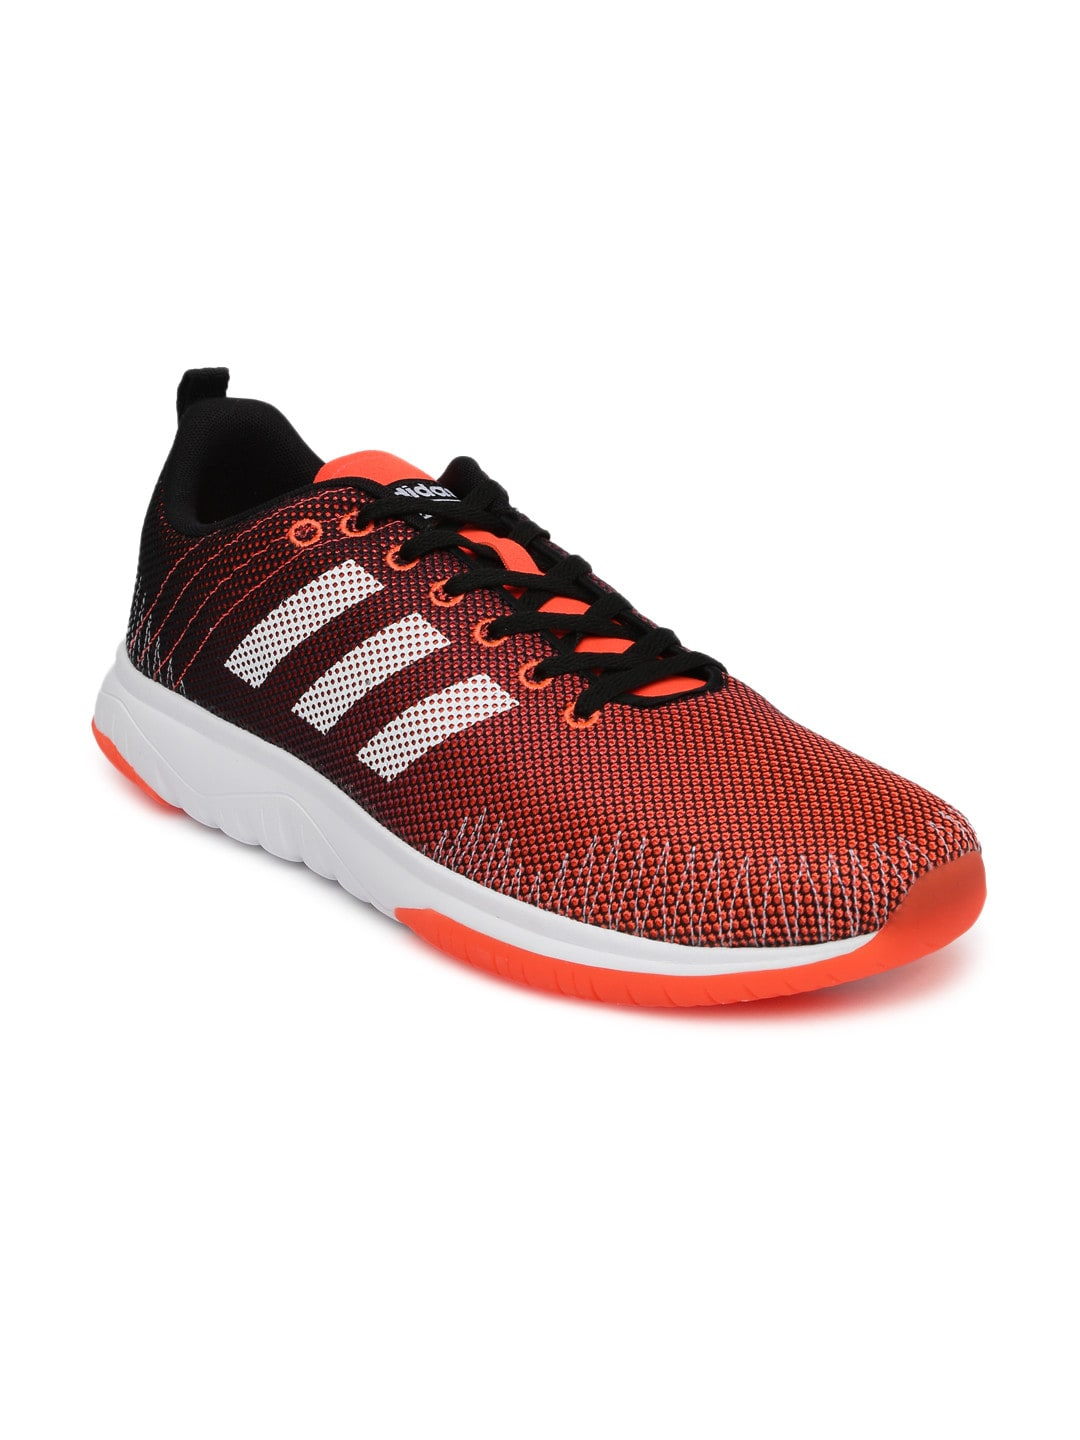 Adidas aw4175 Neo Men Red Solid Cloudfoam Super Flex Sneakers- Price in  India fa30e72de